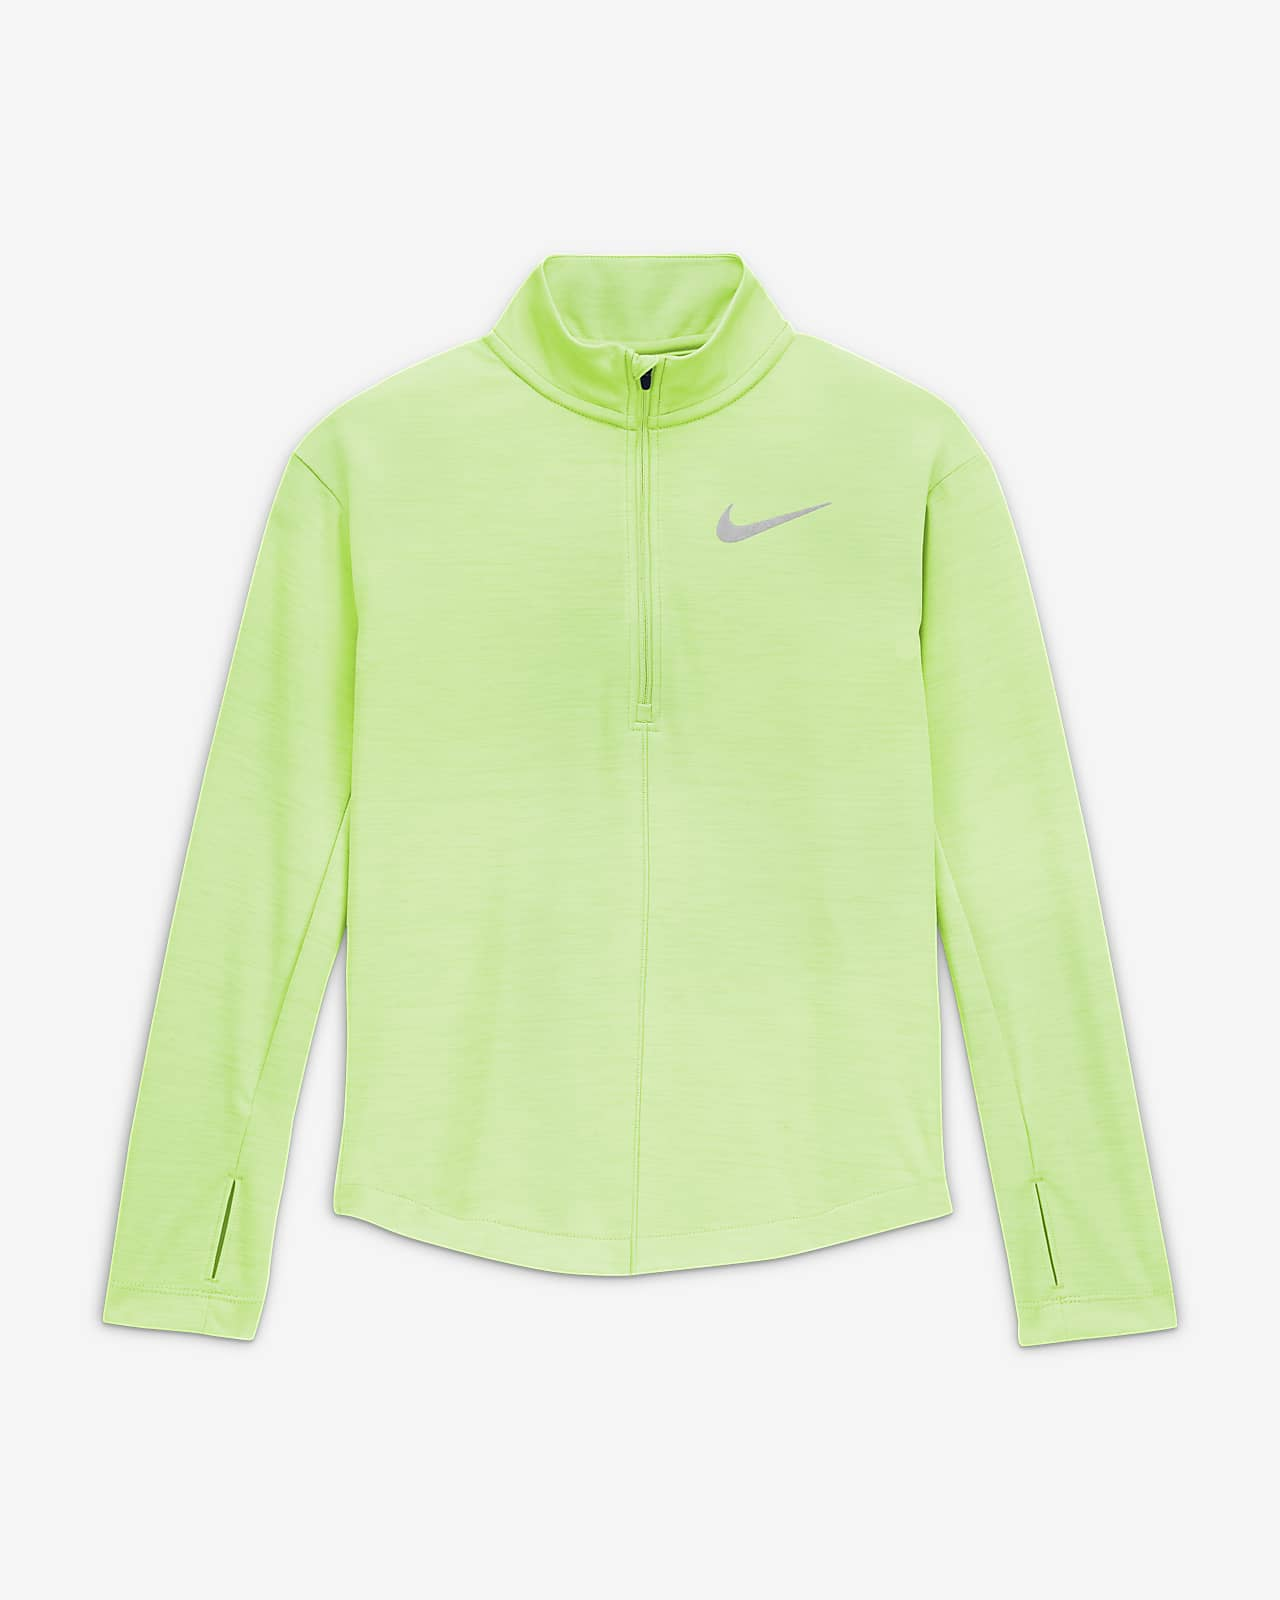 Nike Older Kids' (Girls') 1/2-Zip Long-Sleeve Running Top